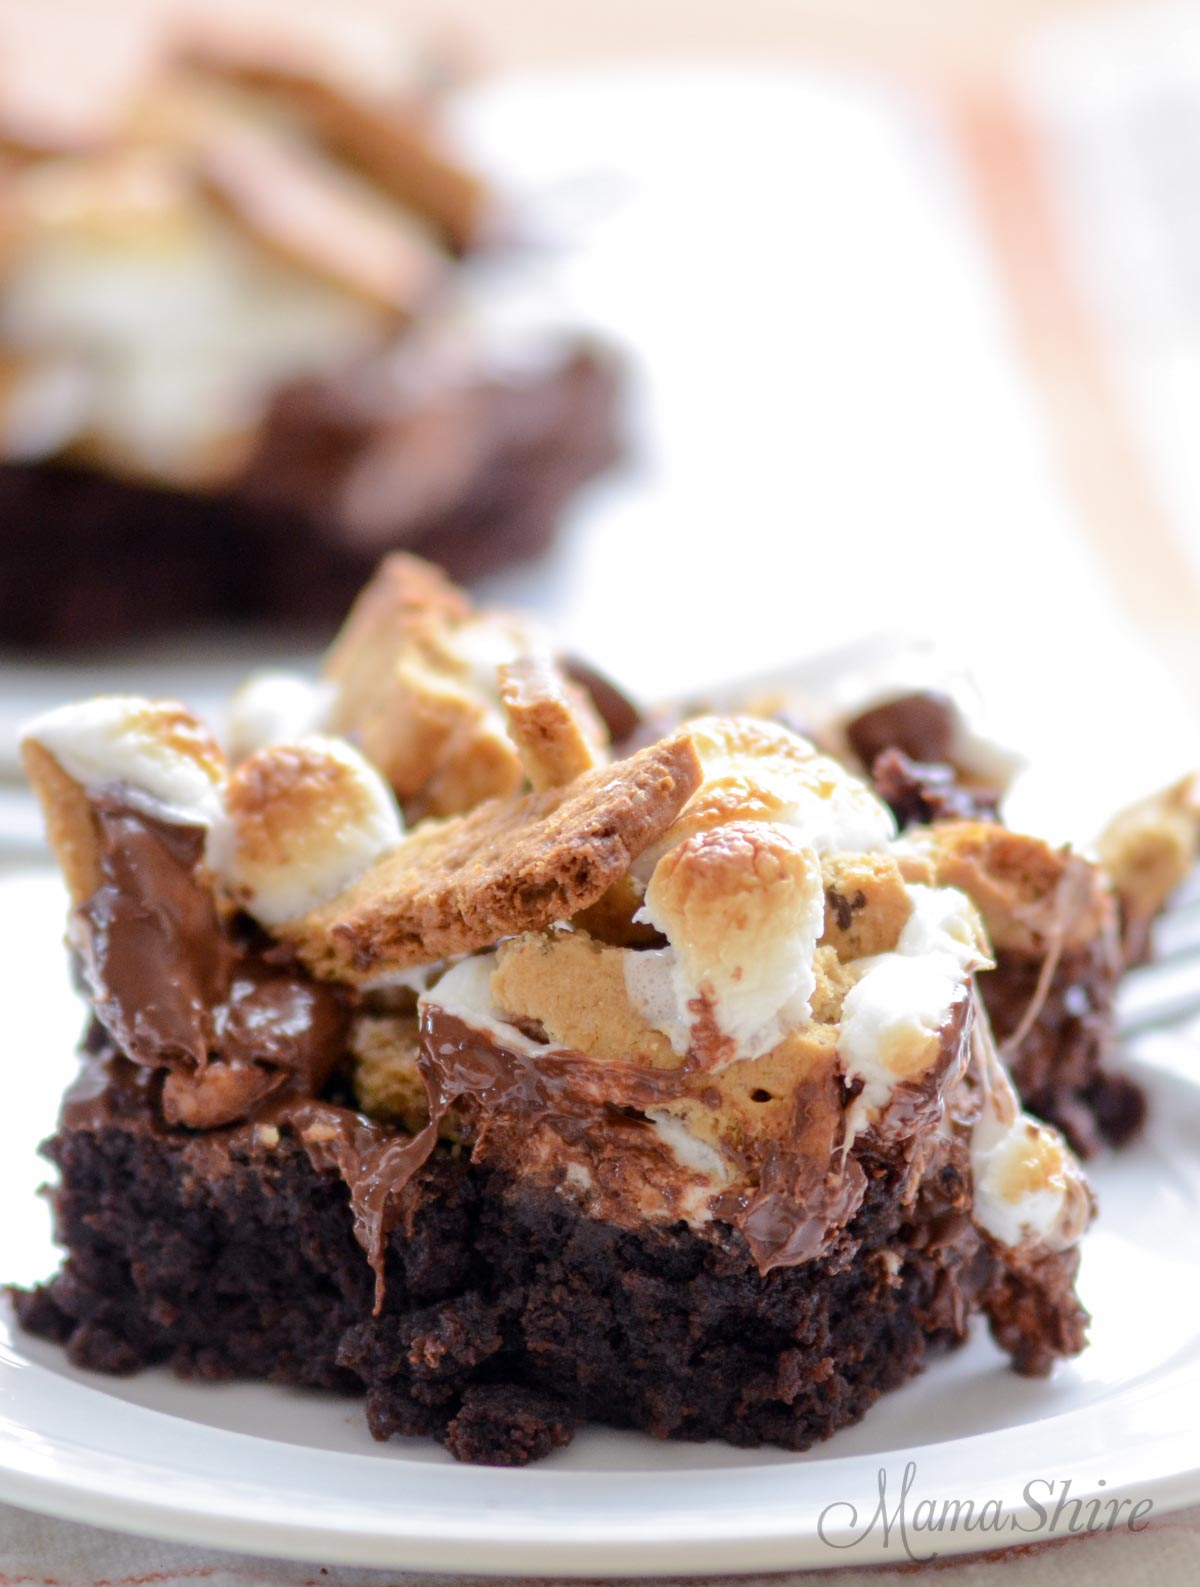 A serving of brownies with roasted marshmallows, gluten-free graham crackers, and dairy-free chocolate chips.